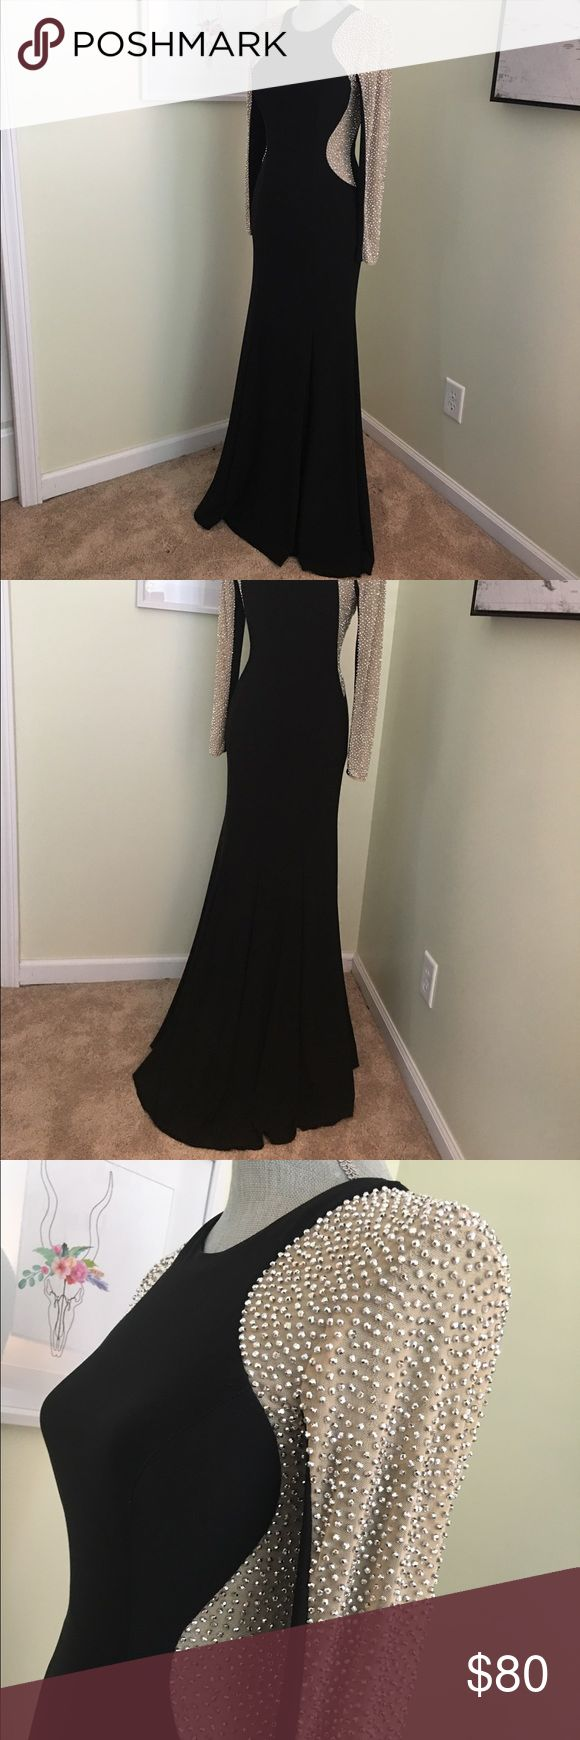 SUPER COMFY prom dress Extremely comfortable, stylish black prom dress size 4 but stretches, 57in long. $80 or best offer, make an offer!! carson-prarie scott Dresses Prom